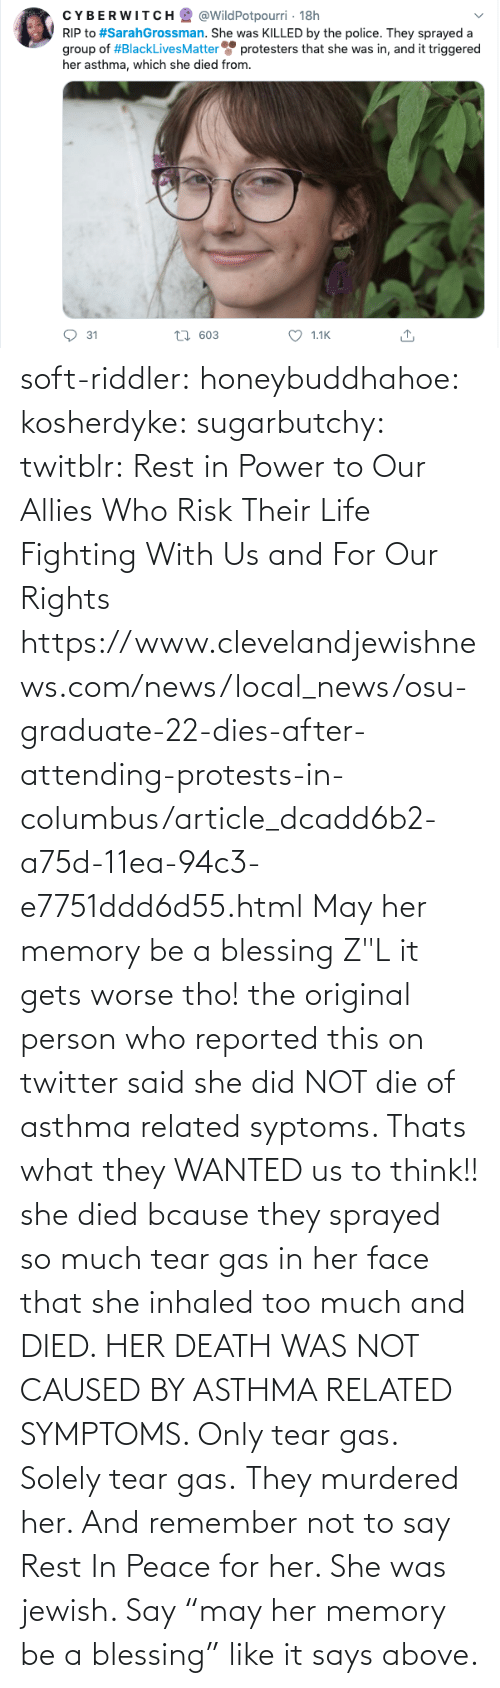 "say: soft-riddler:  honeybuddhahoe:  kosherdyke:  sugarbutchy:  twitblr: Rest in Power to Our Allies Who Risk Their Life Fighting With Us and For Our Rights https://www.clevelandjewishnews.com/news/local_news/osu-graduate-22-dies-after-attending-protests-in-columbus/article_dcadd6b2-a75d-11ea-94c3-e7751ddd6d55.html    May her memory be a blessing Z""L  it gets worse tho! the original person who reported this on twitter said she did NOT die of asthma related syptoms. Thats what they WANTED us to think!! she died bcause they sprayed so much tear gas in her face that she inhaled too much and DIED. HER DEATH WAS NOT CAUSED BY ASTHMA RELATED SYMPTOMS. Only tear gas. Solely tear gas. They murdered her.     And remember not to say Rest In Peace for her. She was jewish. Say ""may her memory be a blessing"" like it says above."